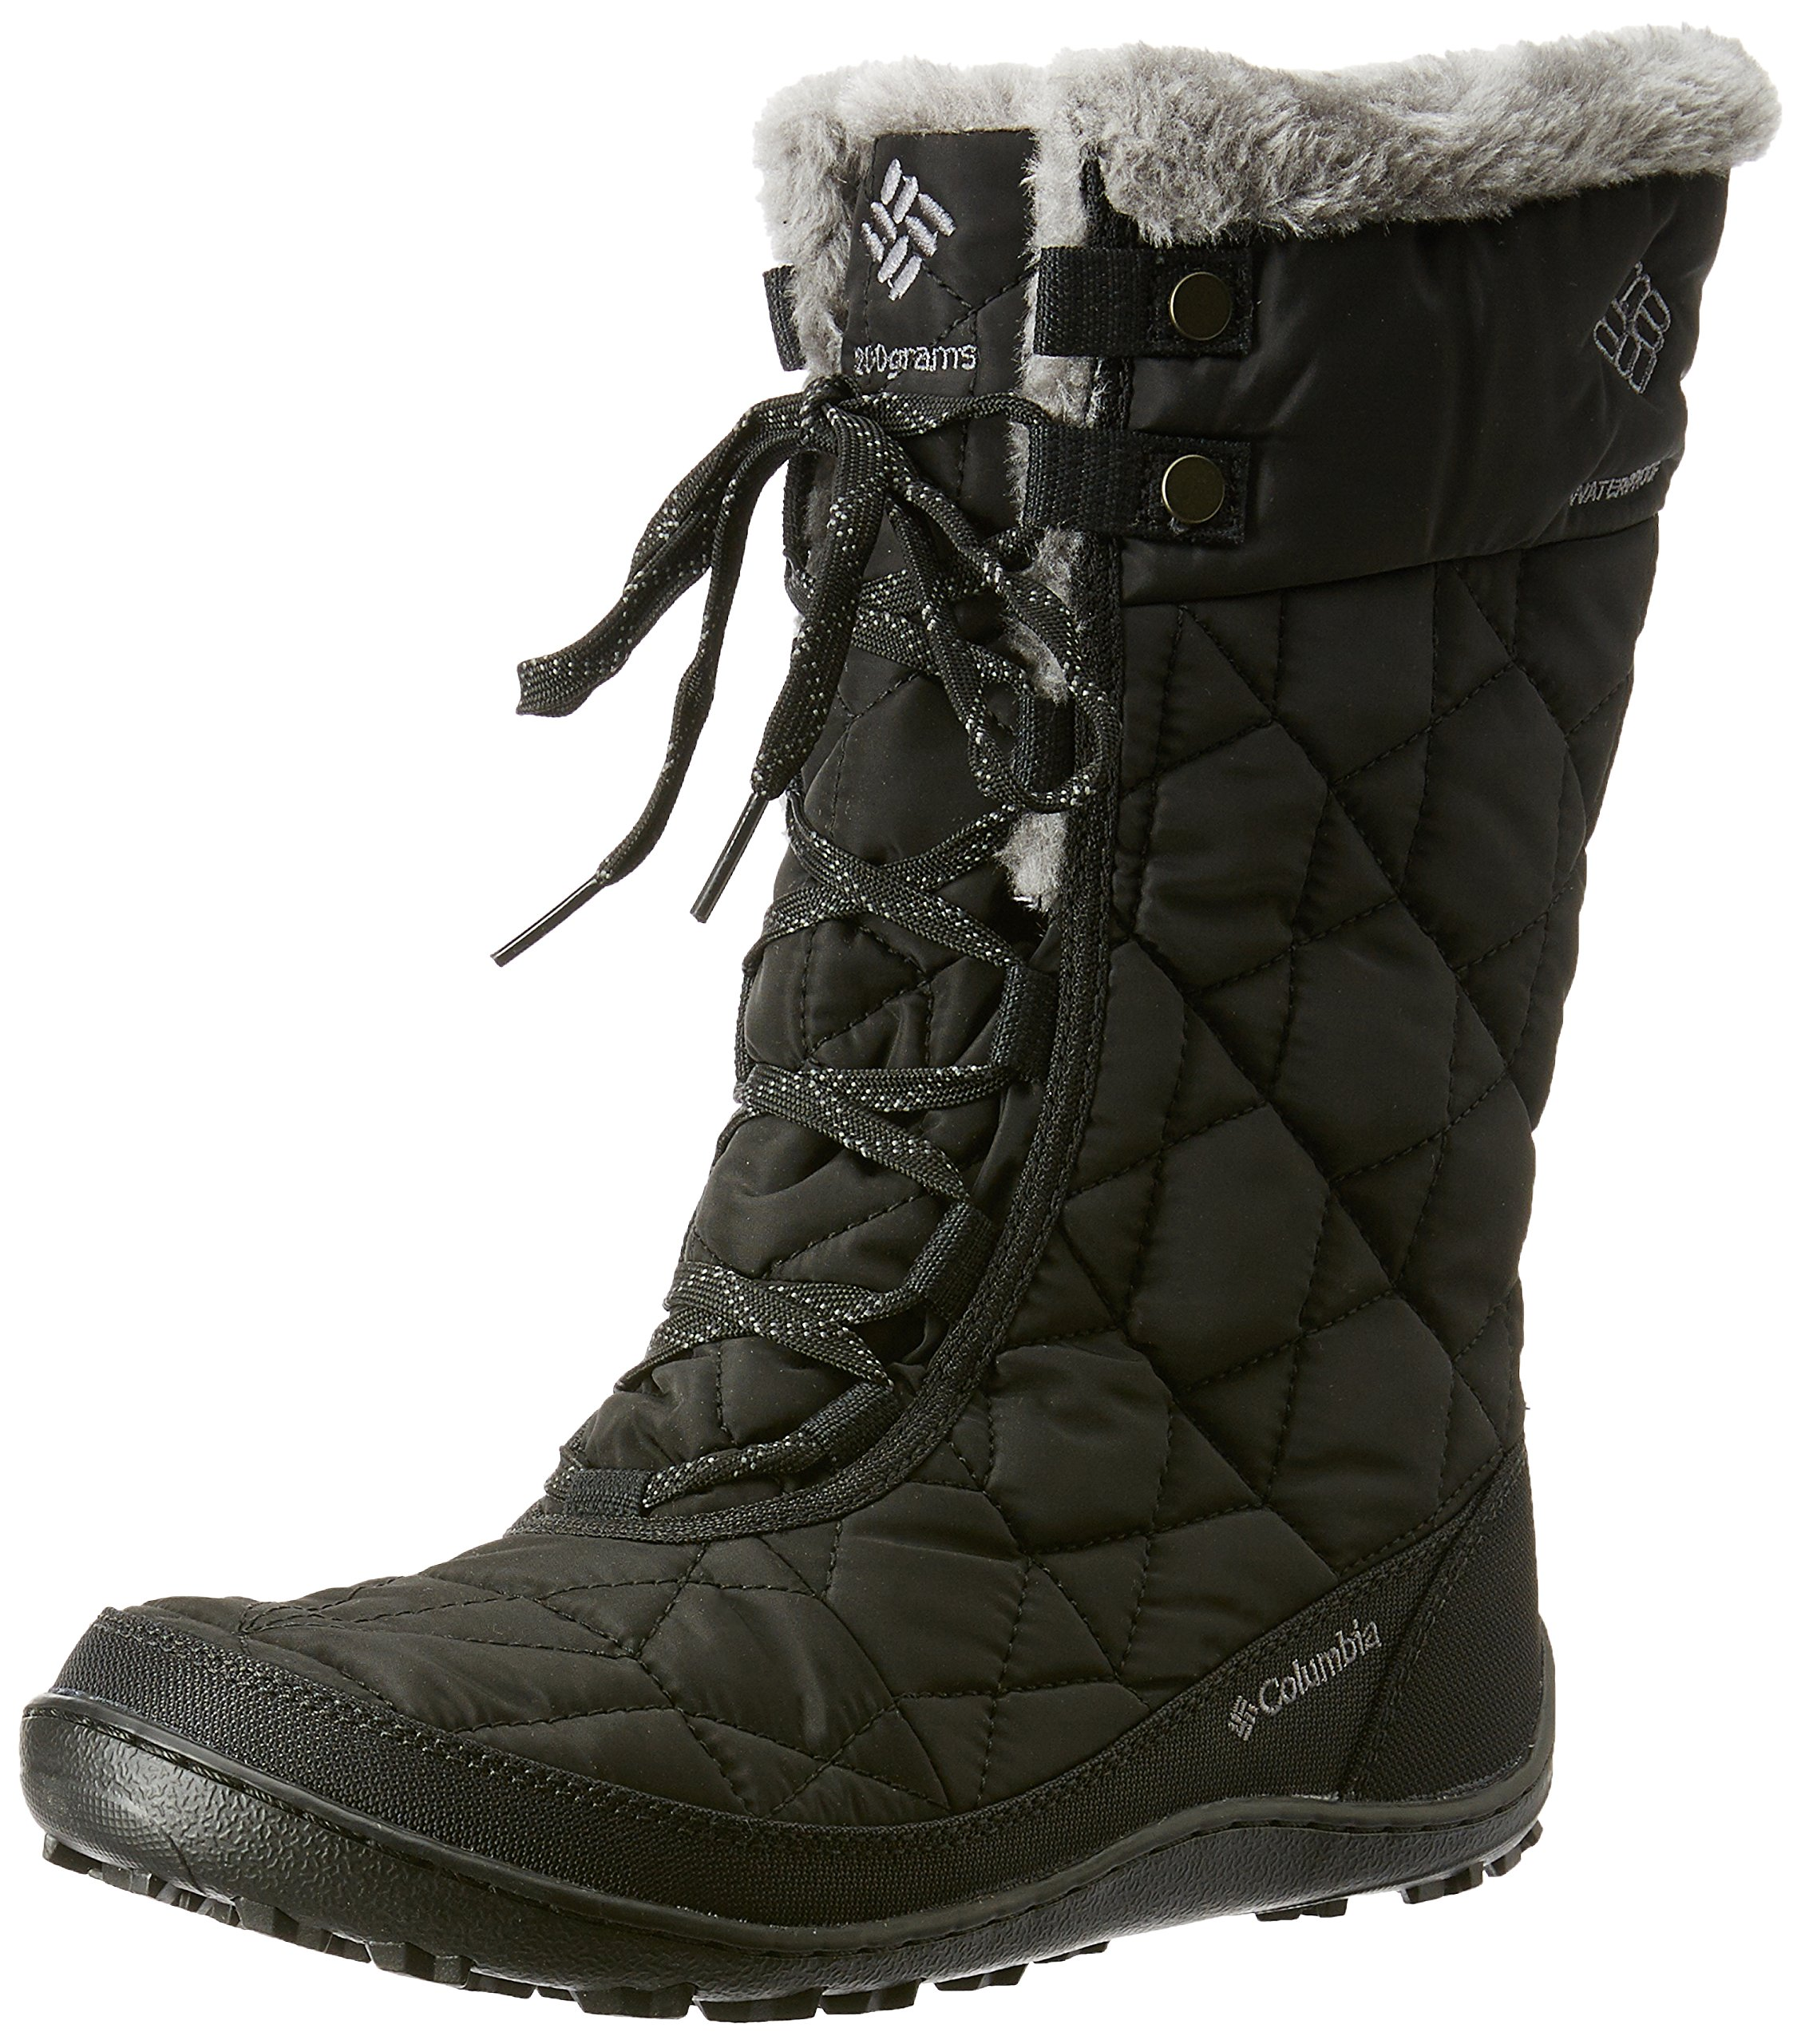 Columbia Women's Minx Mid II Omni-Heat Snow Boot, Black, Charcoal, 9 B US